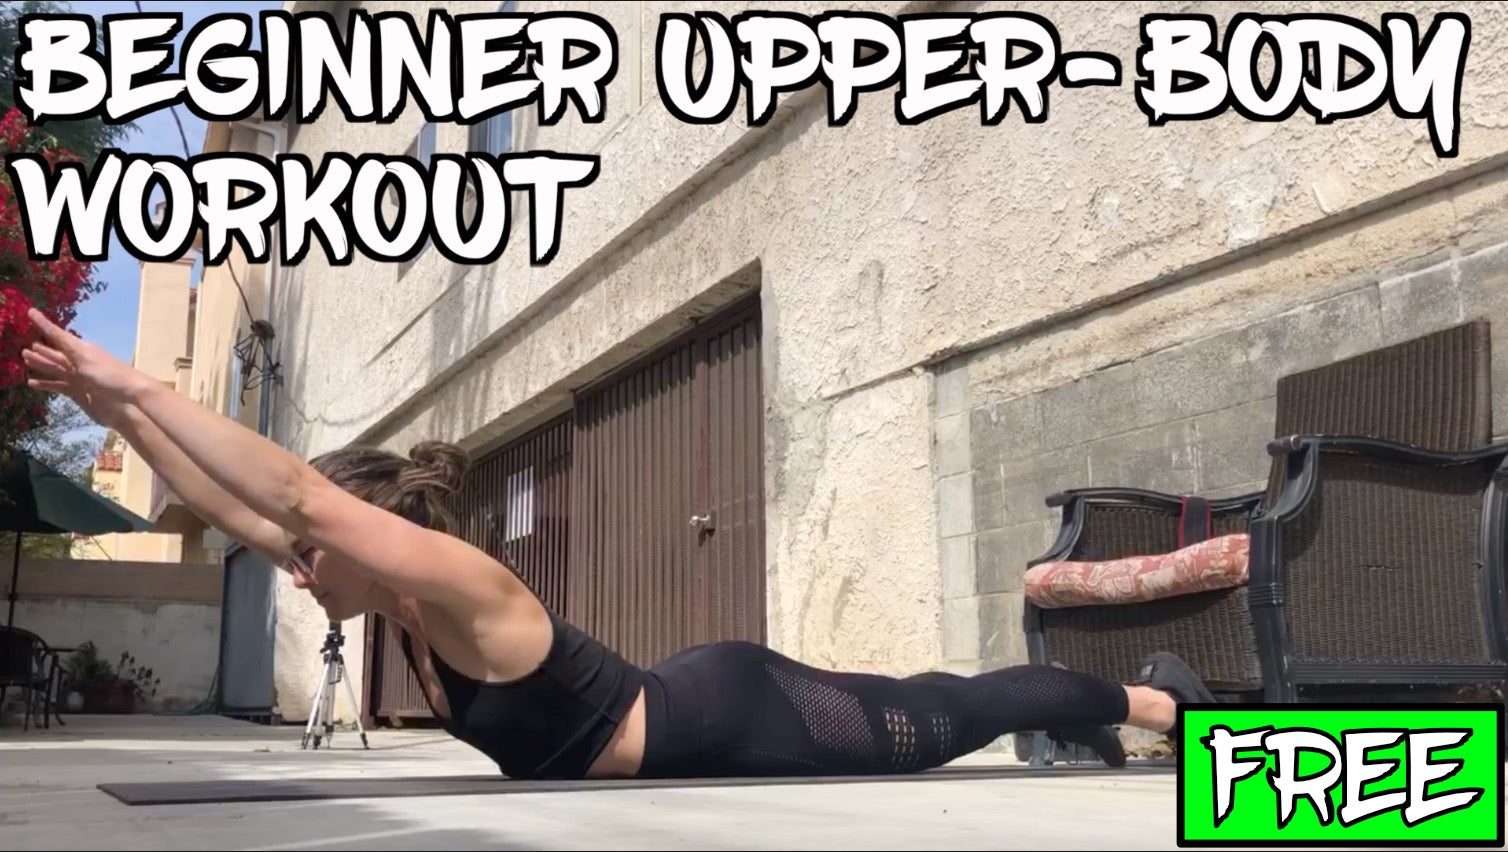 Free Beginner Upper-Body Workout